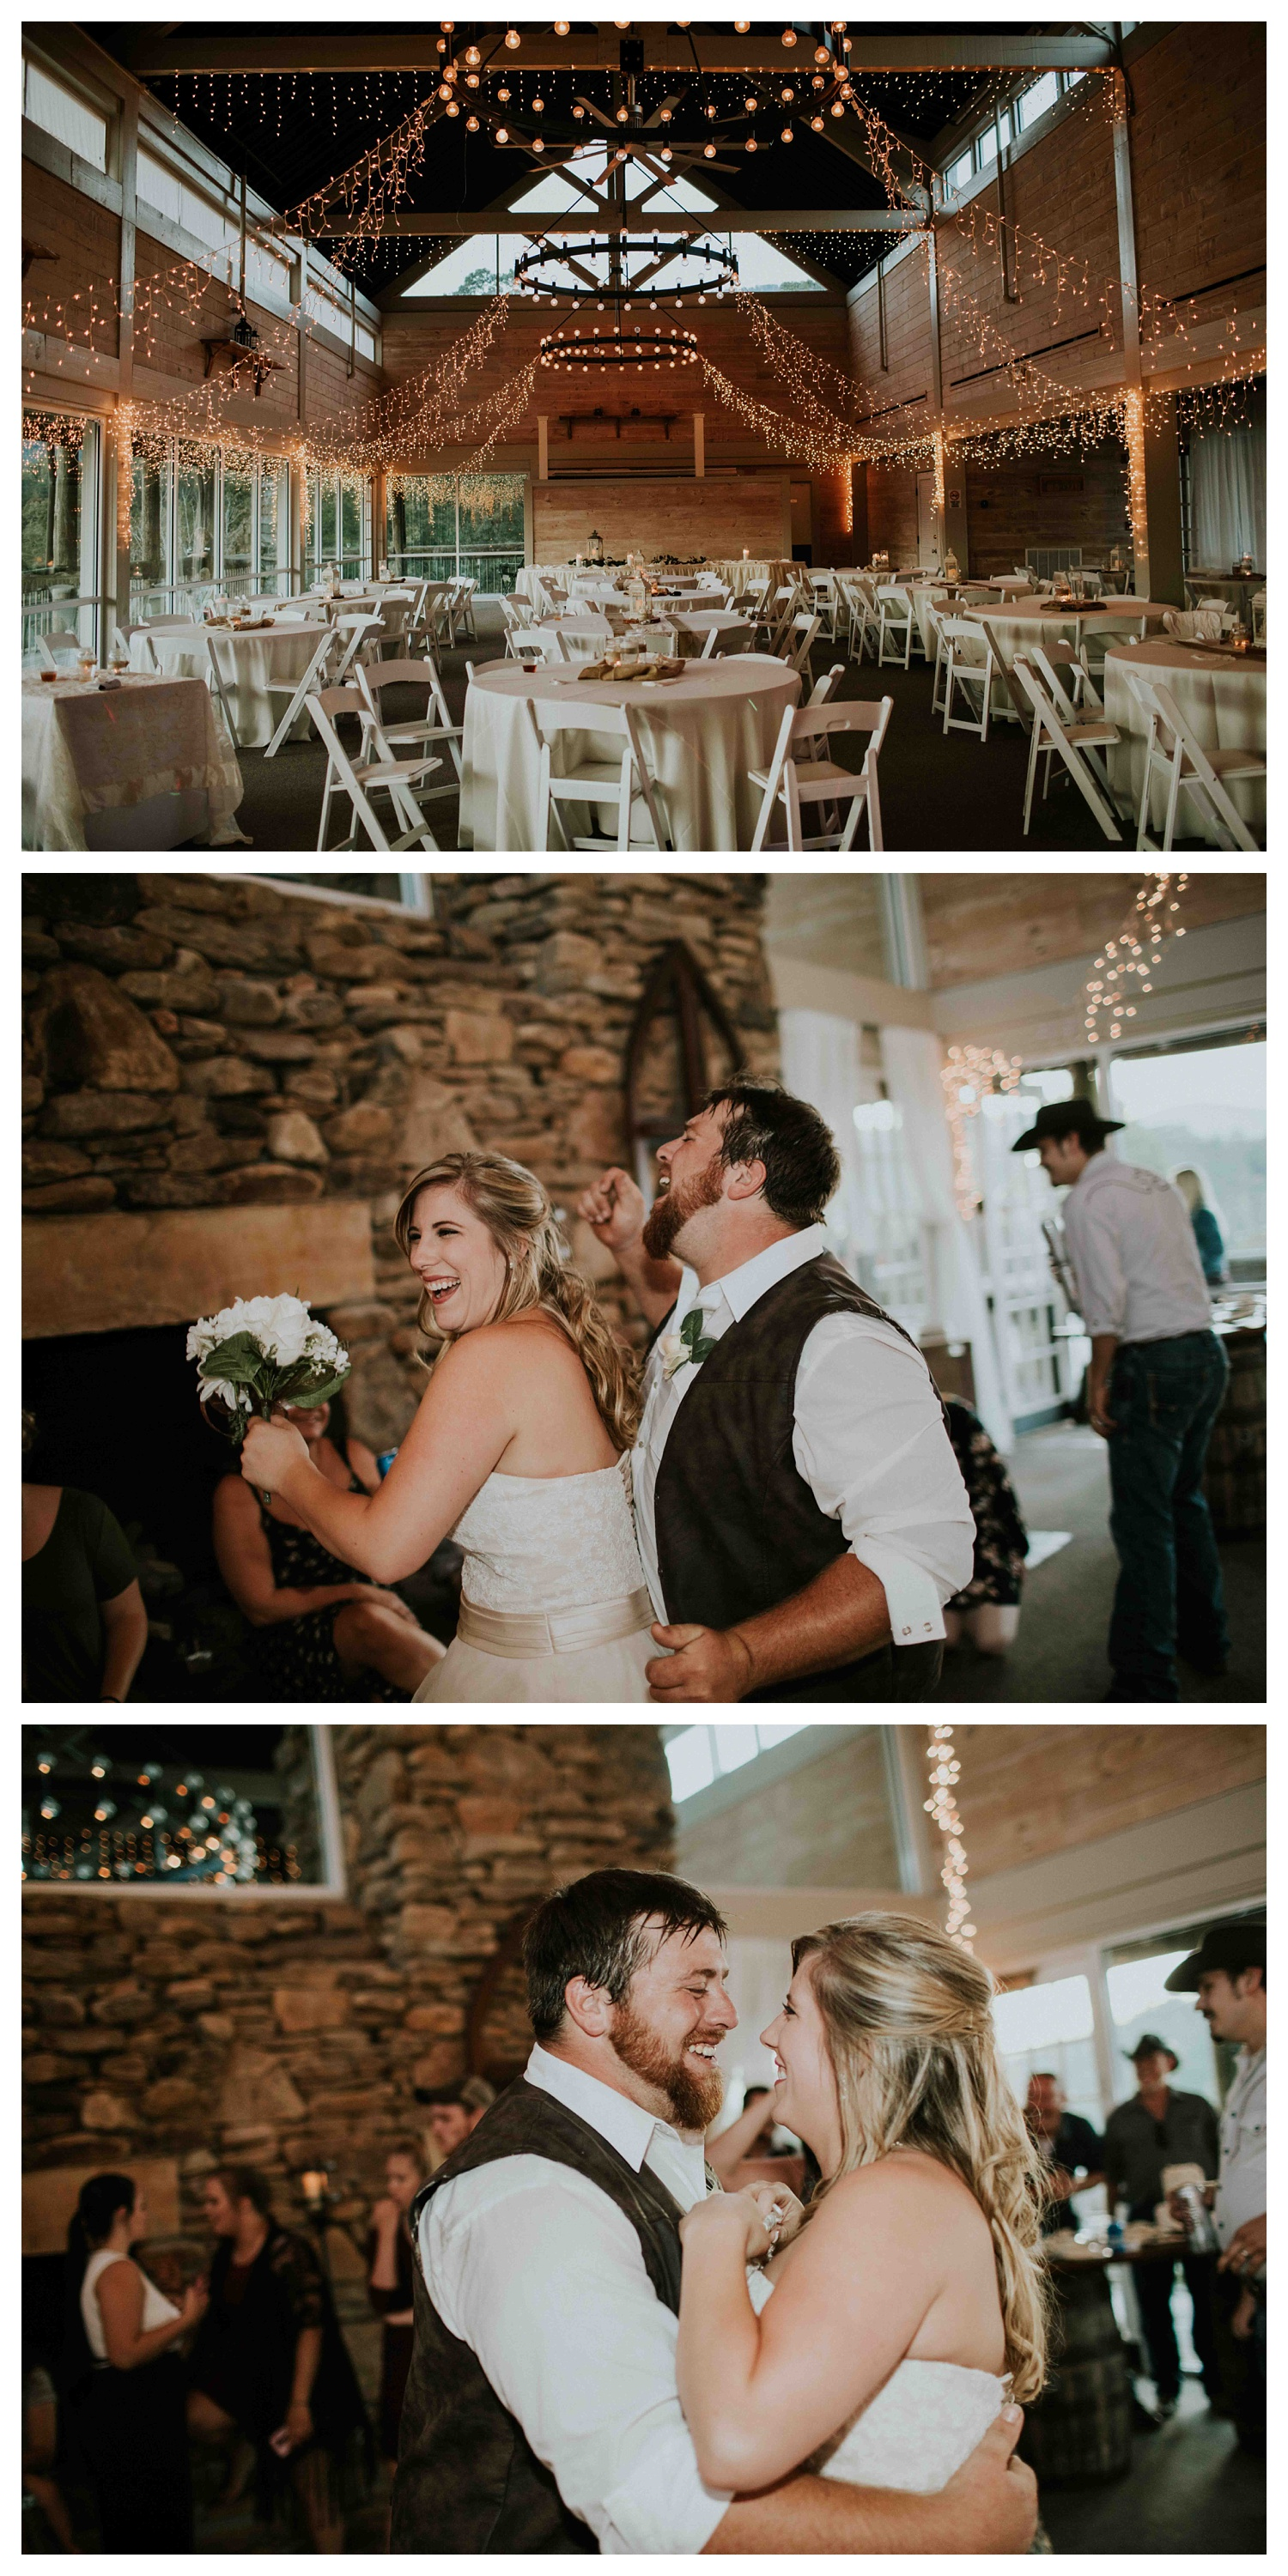 Destination Wedding Photographer R-Ranch in the Mountains Georgia Chloe Ann Photography_0013.jpg